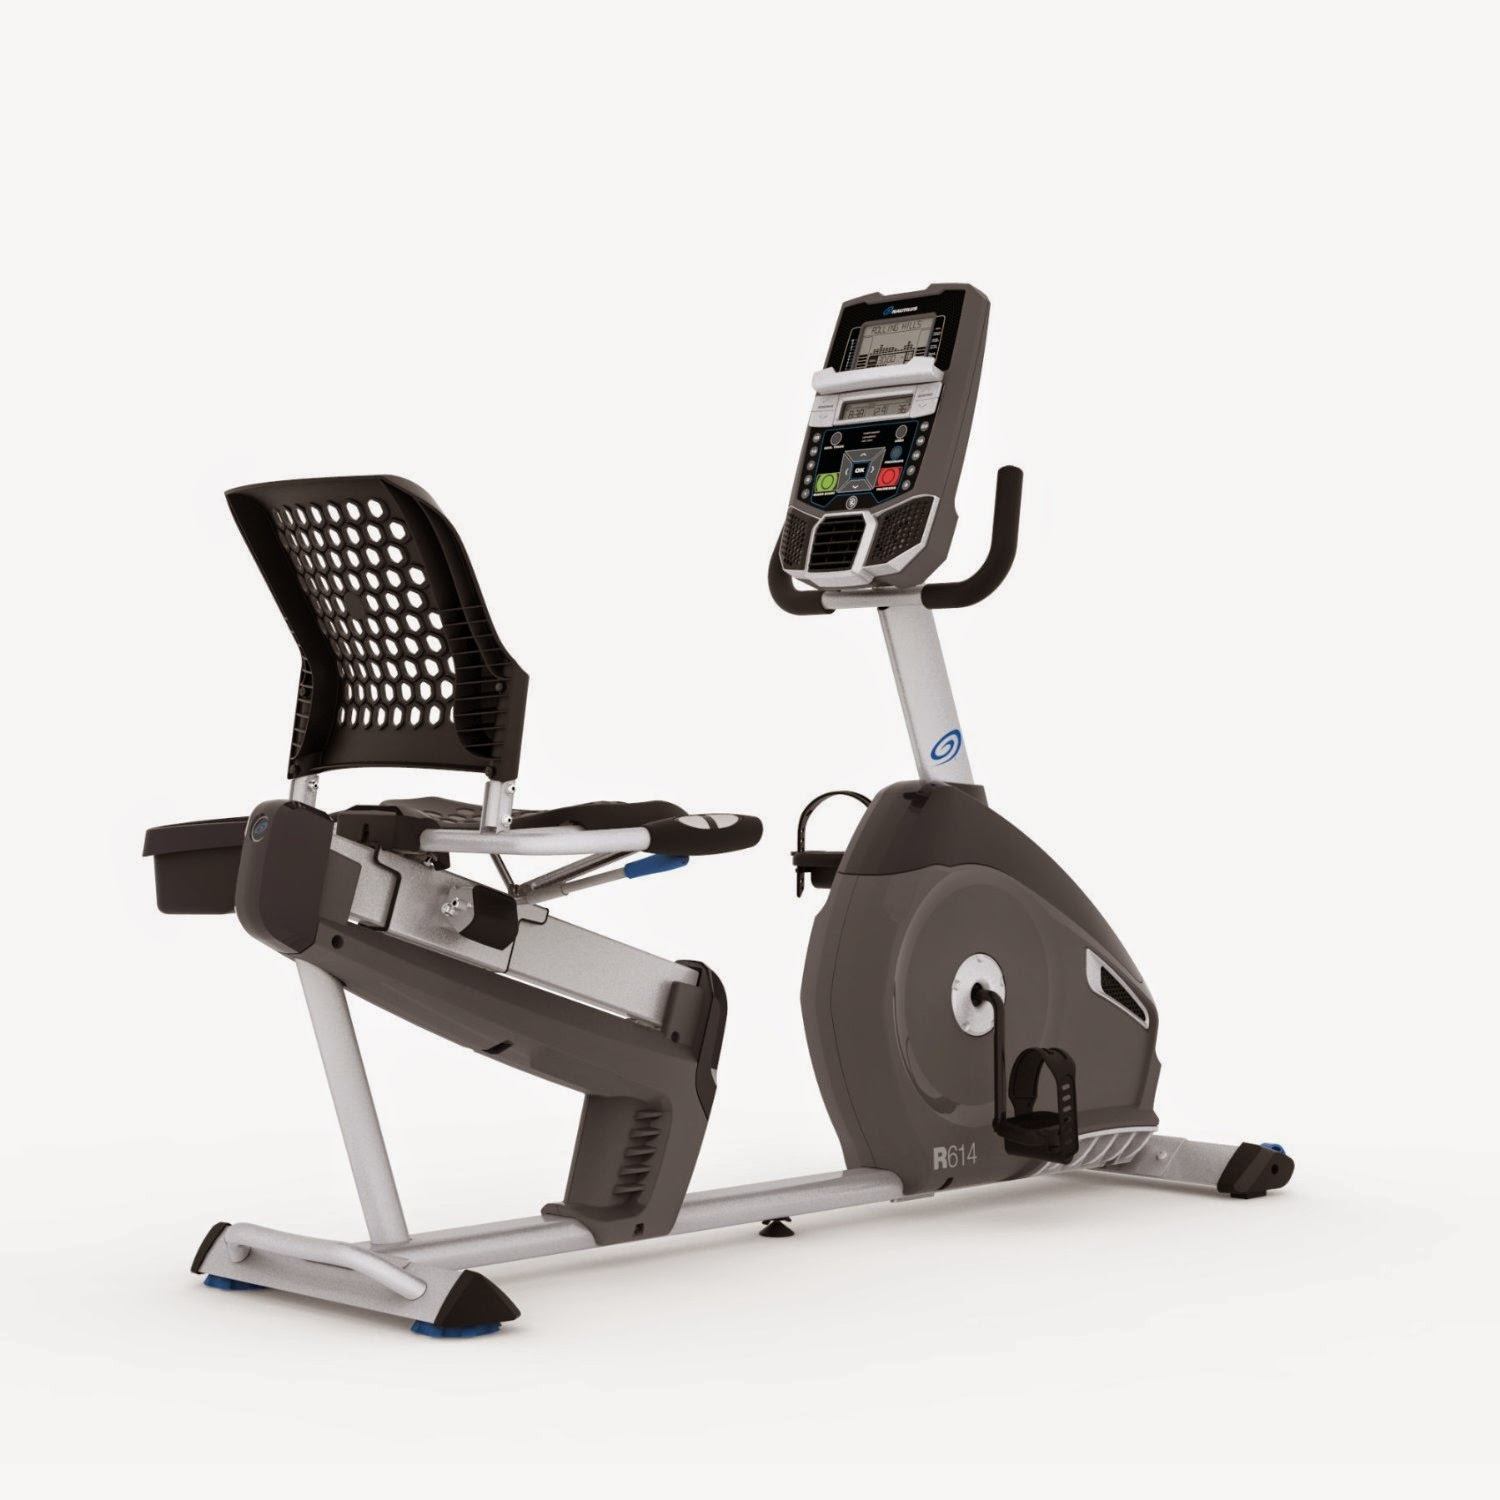 Nautilus R614 Recumbent Exercise Bike, review features and compare with Nautilus R616, 22 workout programs, 20 resistance levels